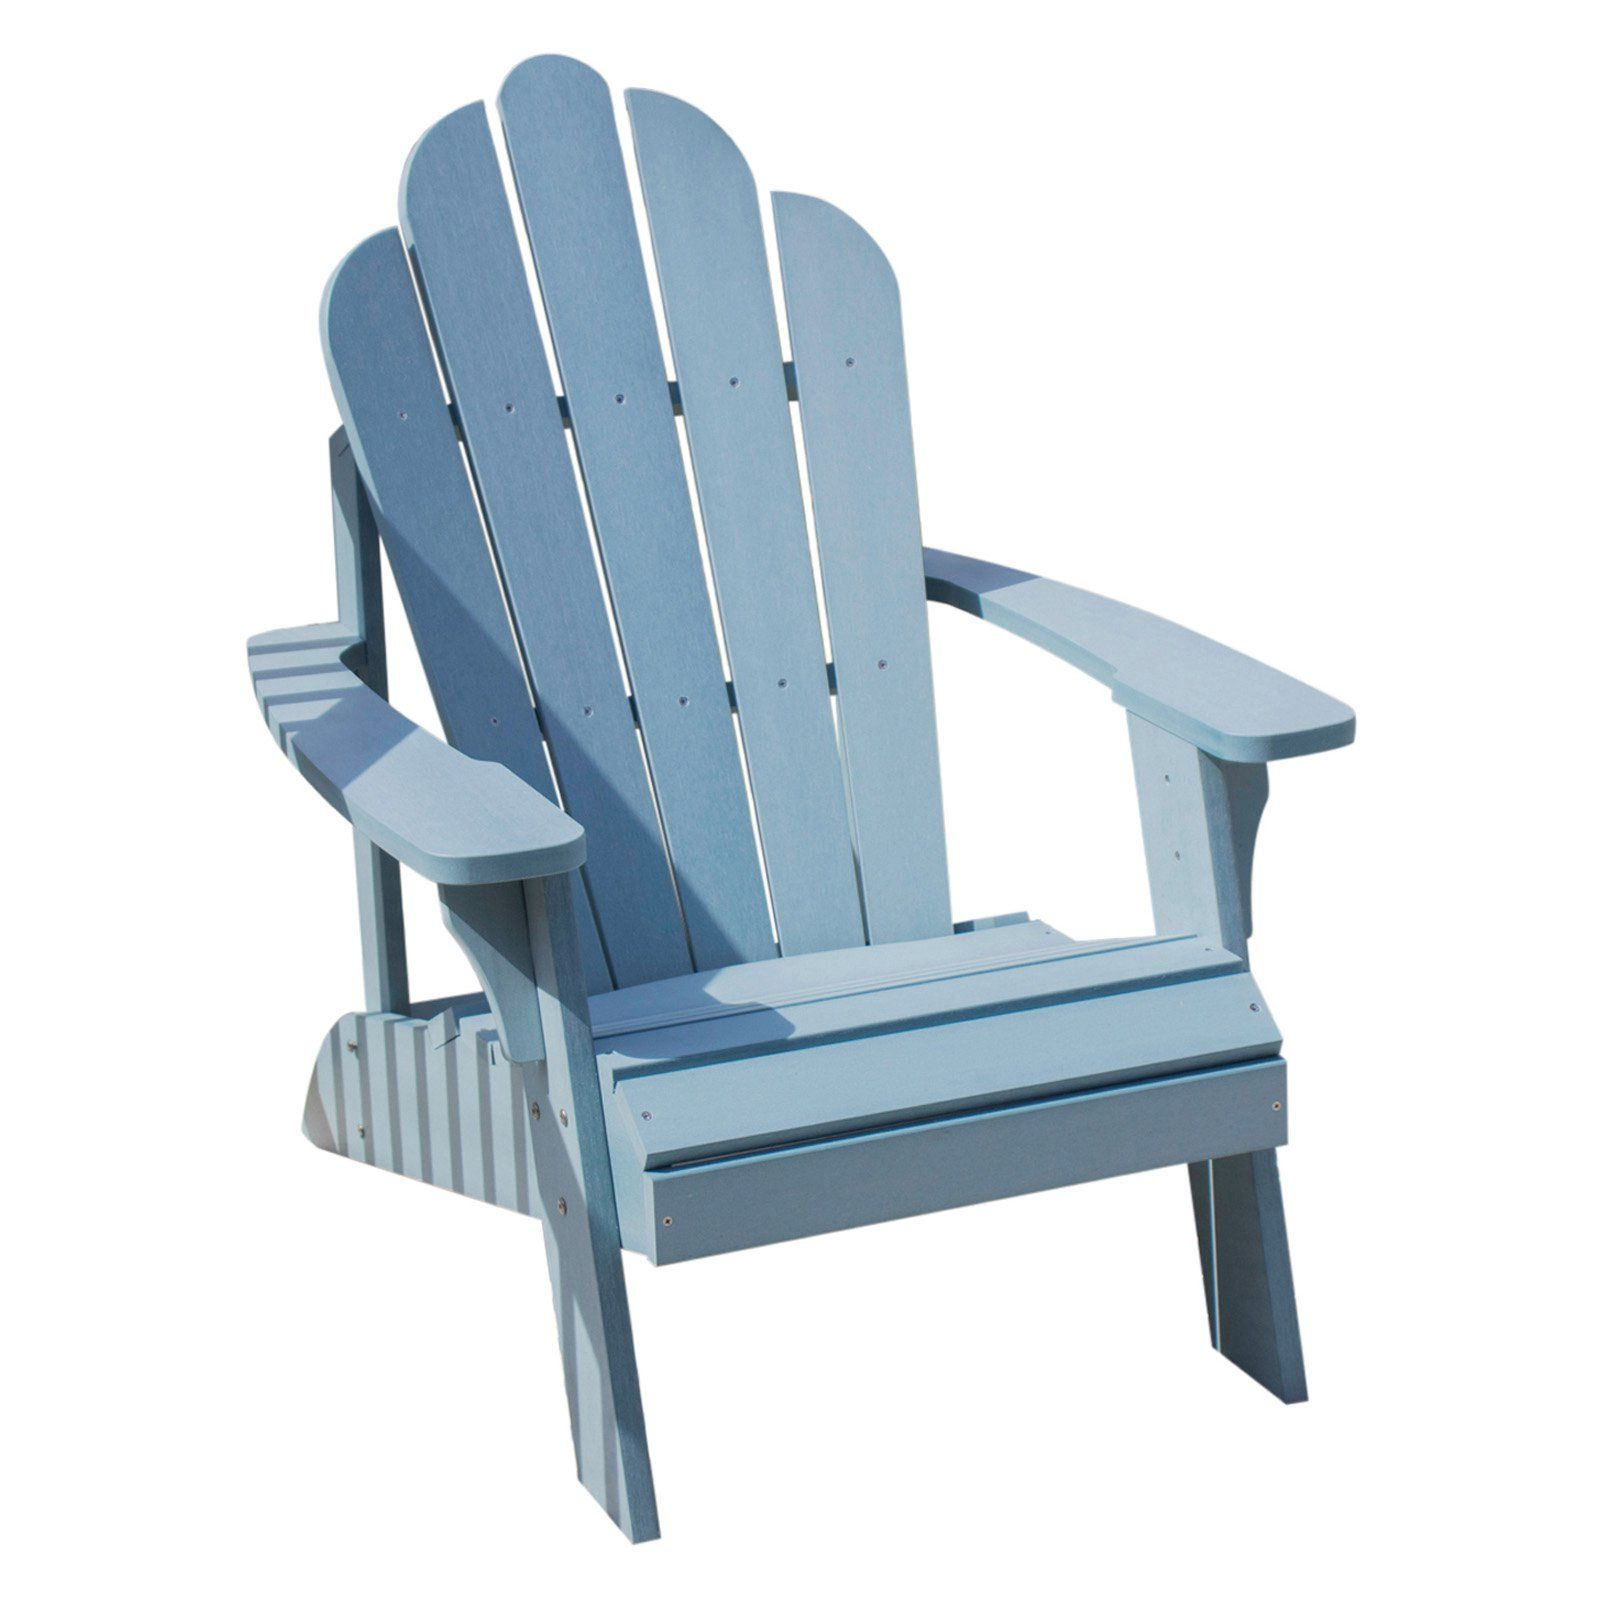 Outdoor backyard expressions recycled plastic adirondack chair